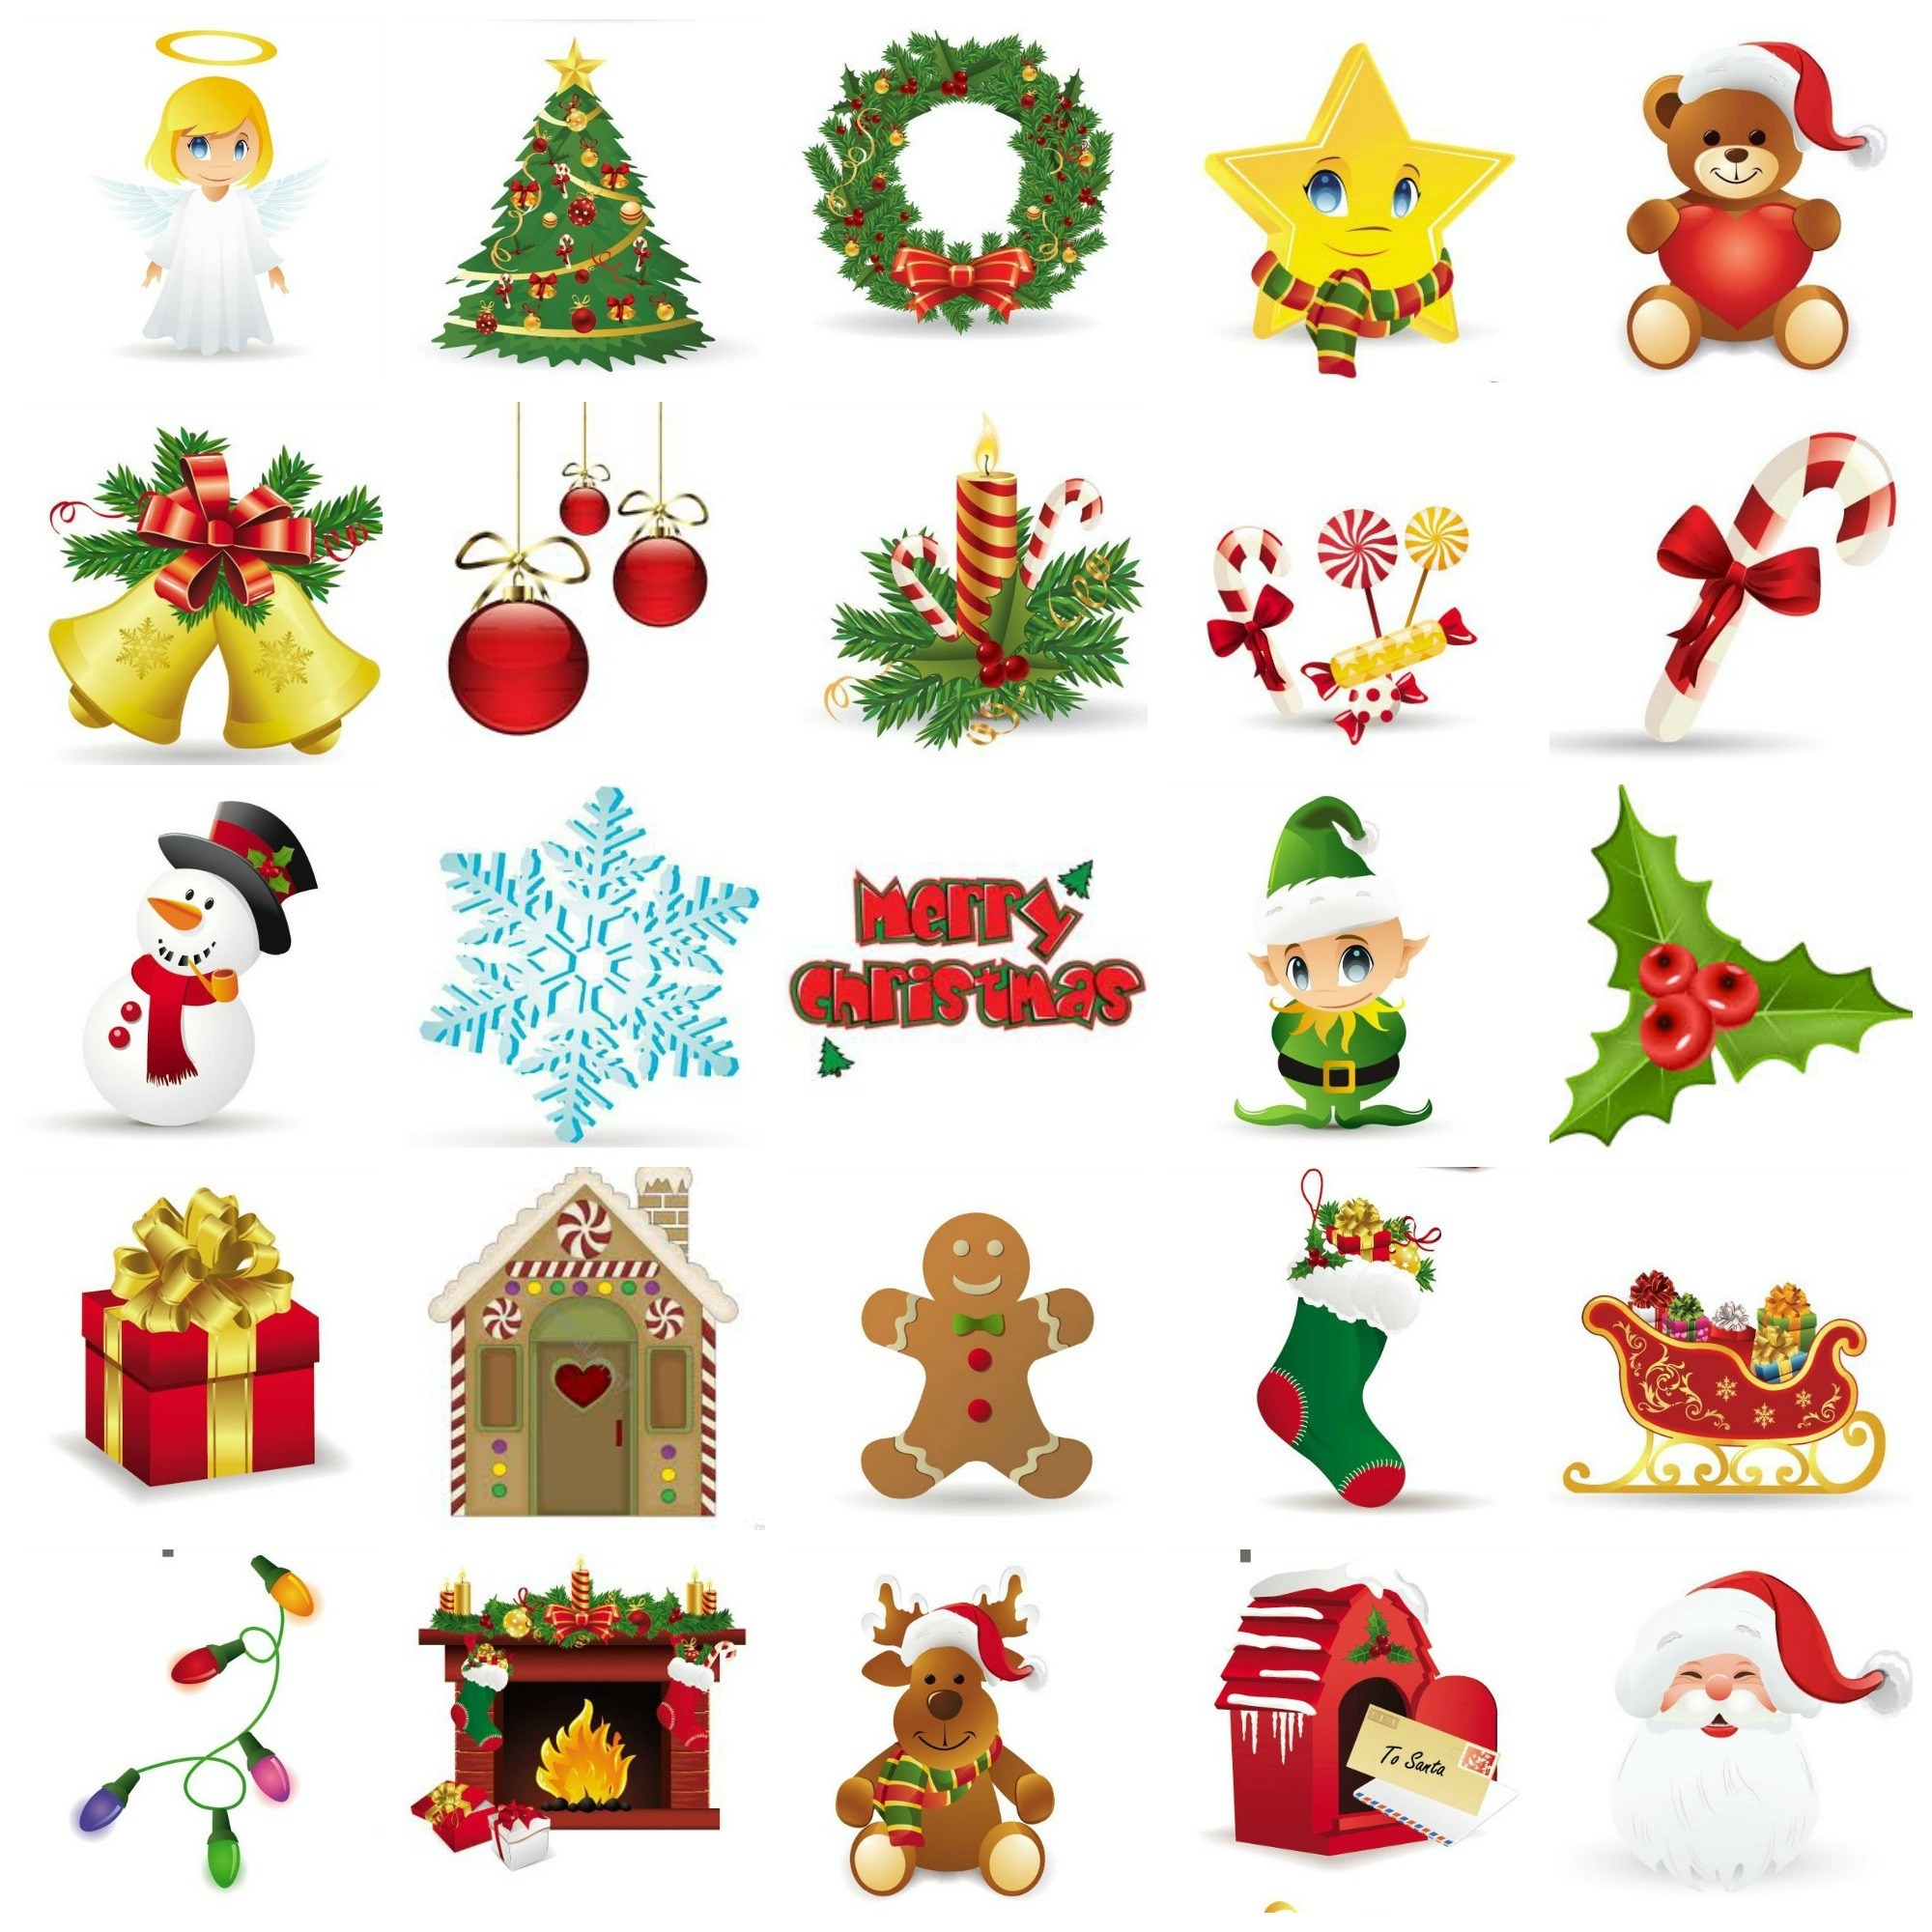 graphic relating to Free Printable Christmas Cutouts identified as Cost-free Printable Xmas Cutouts Absolutely free Printable Obtain